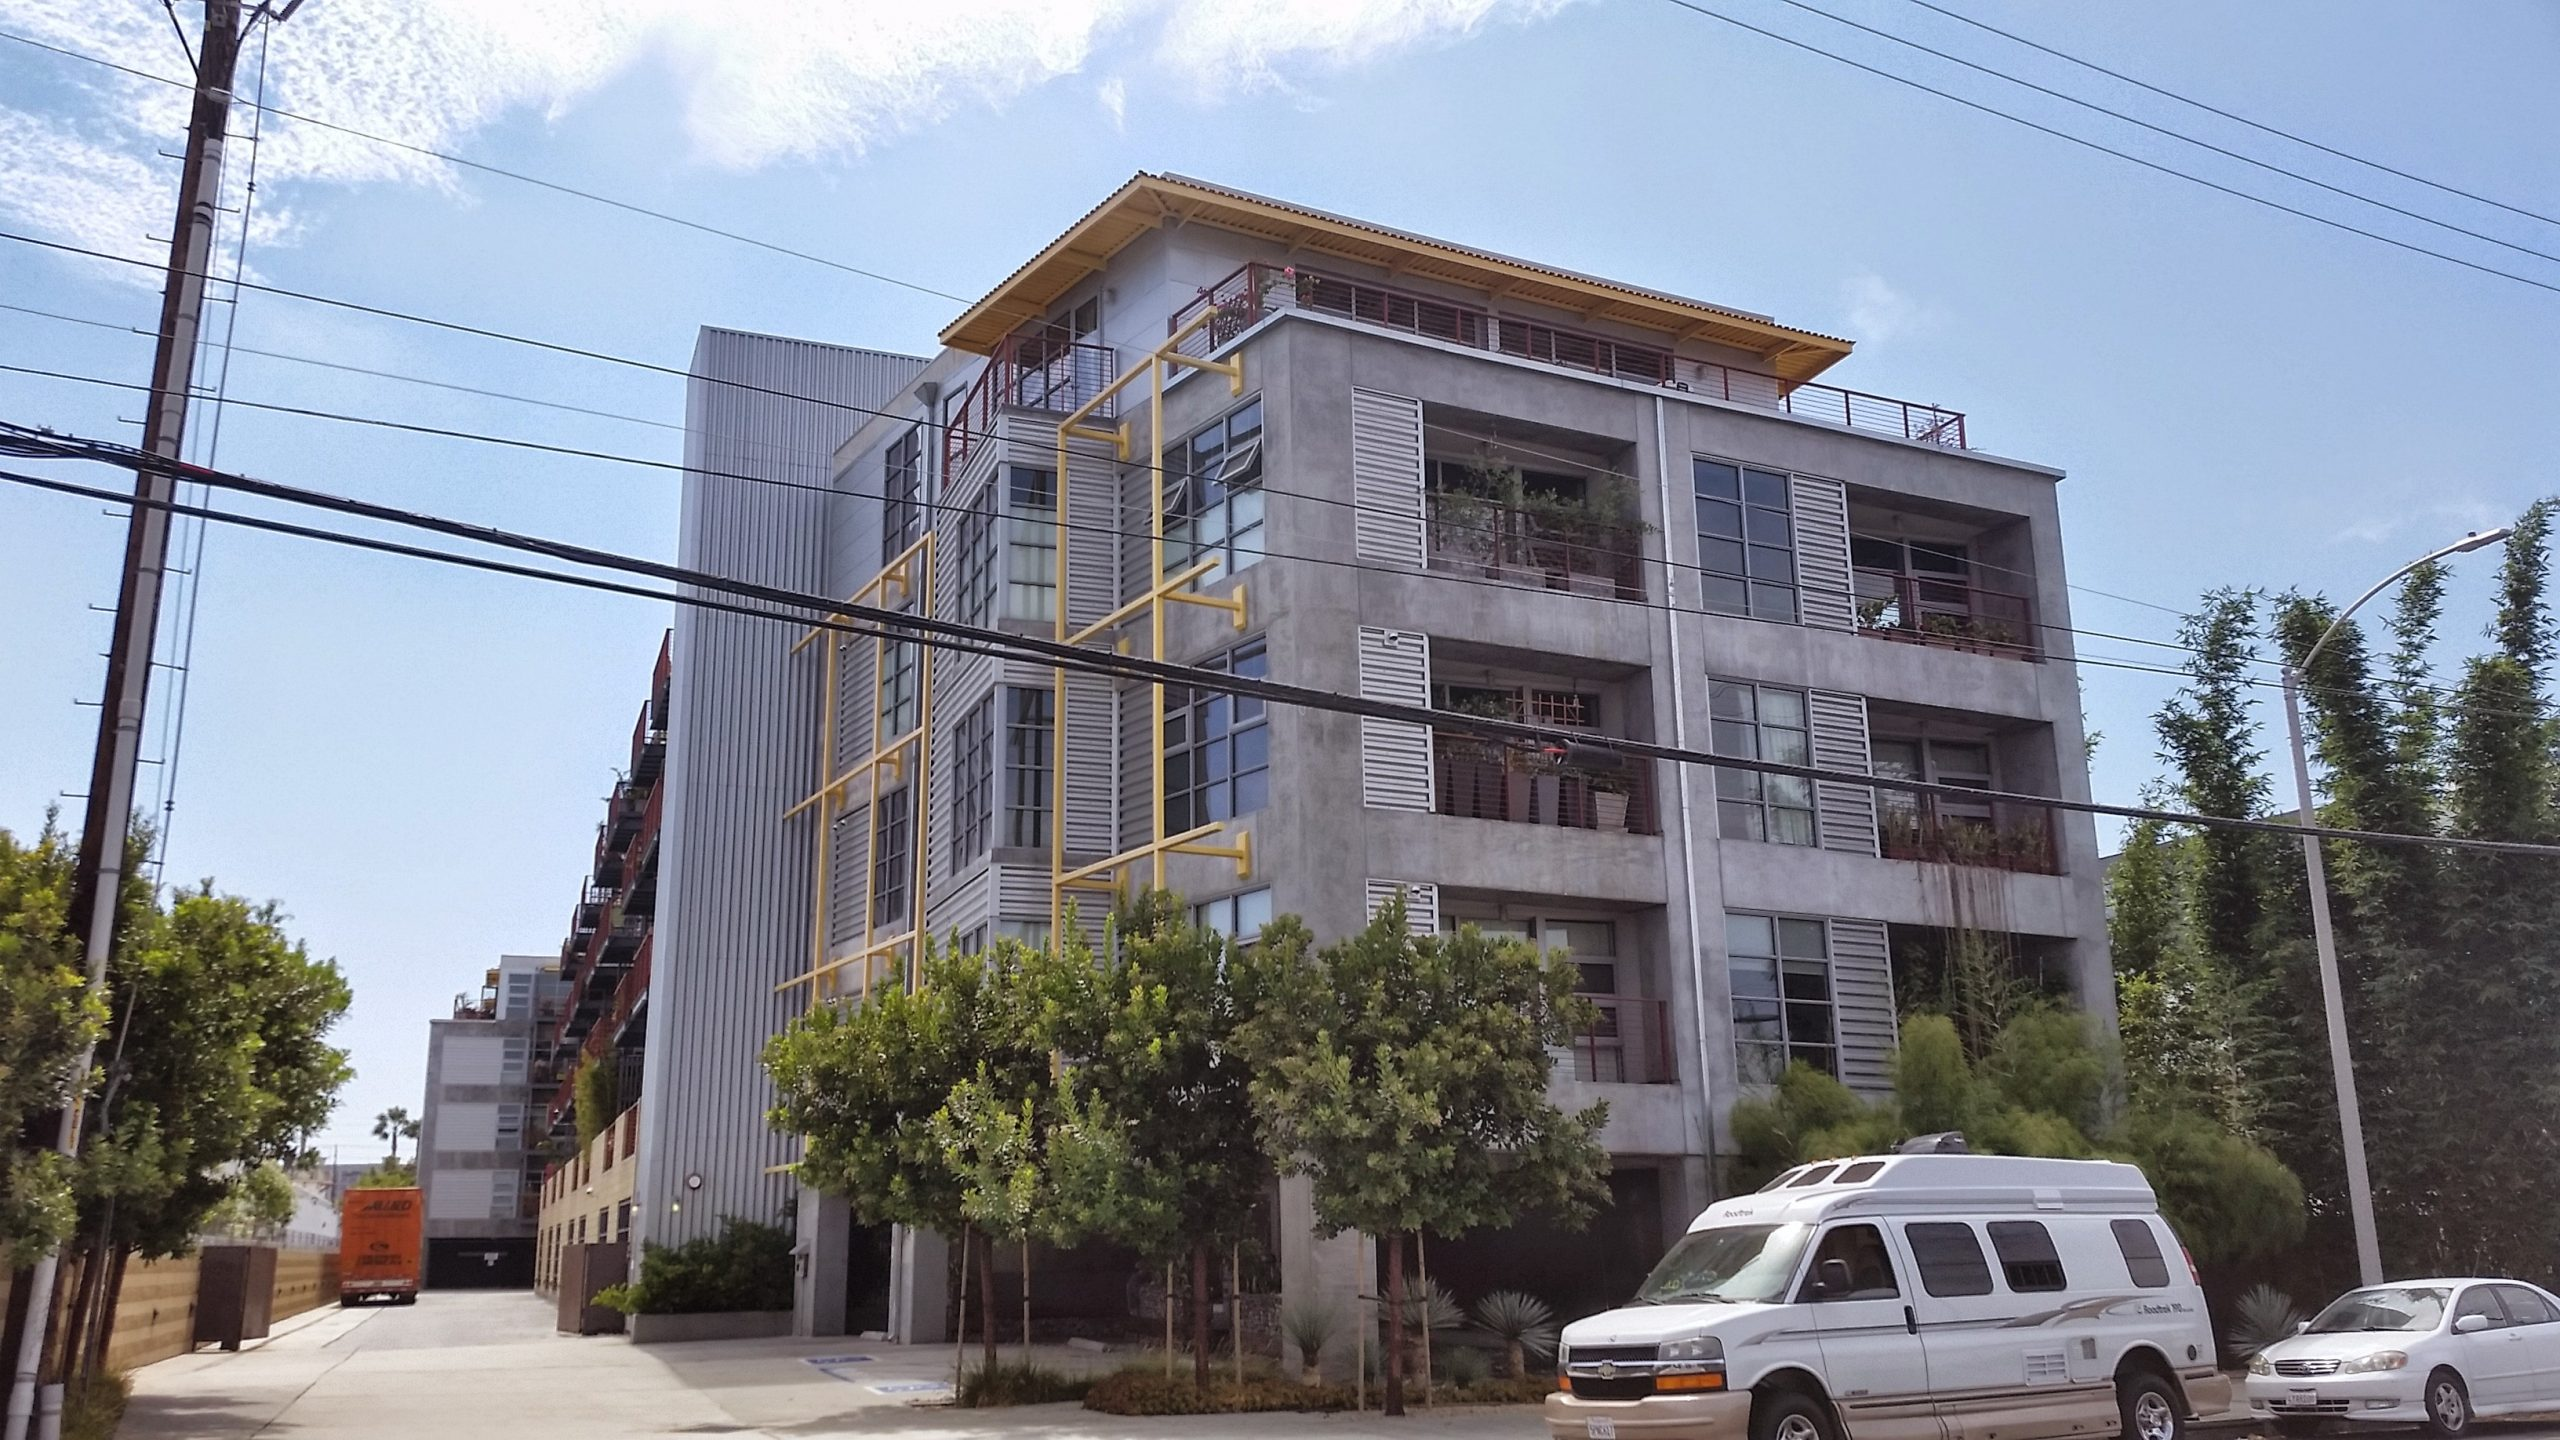 Current Condos for Sale in the Lofts District